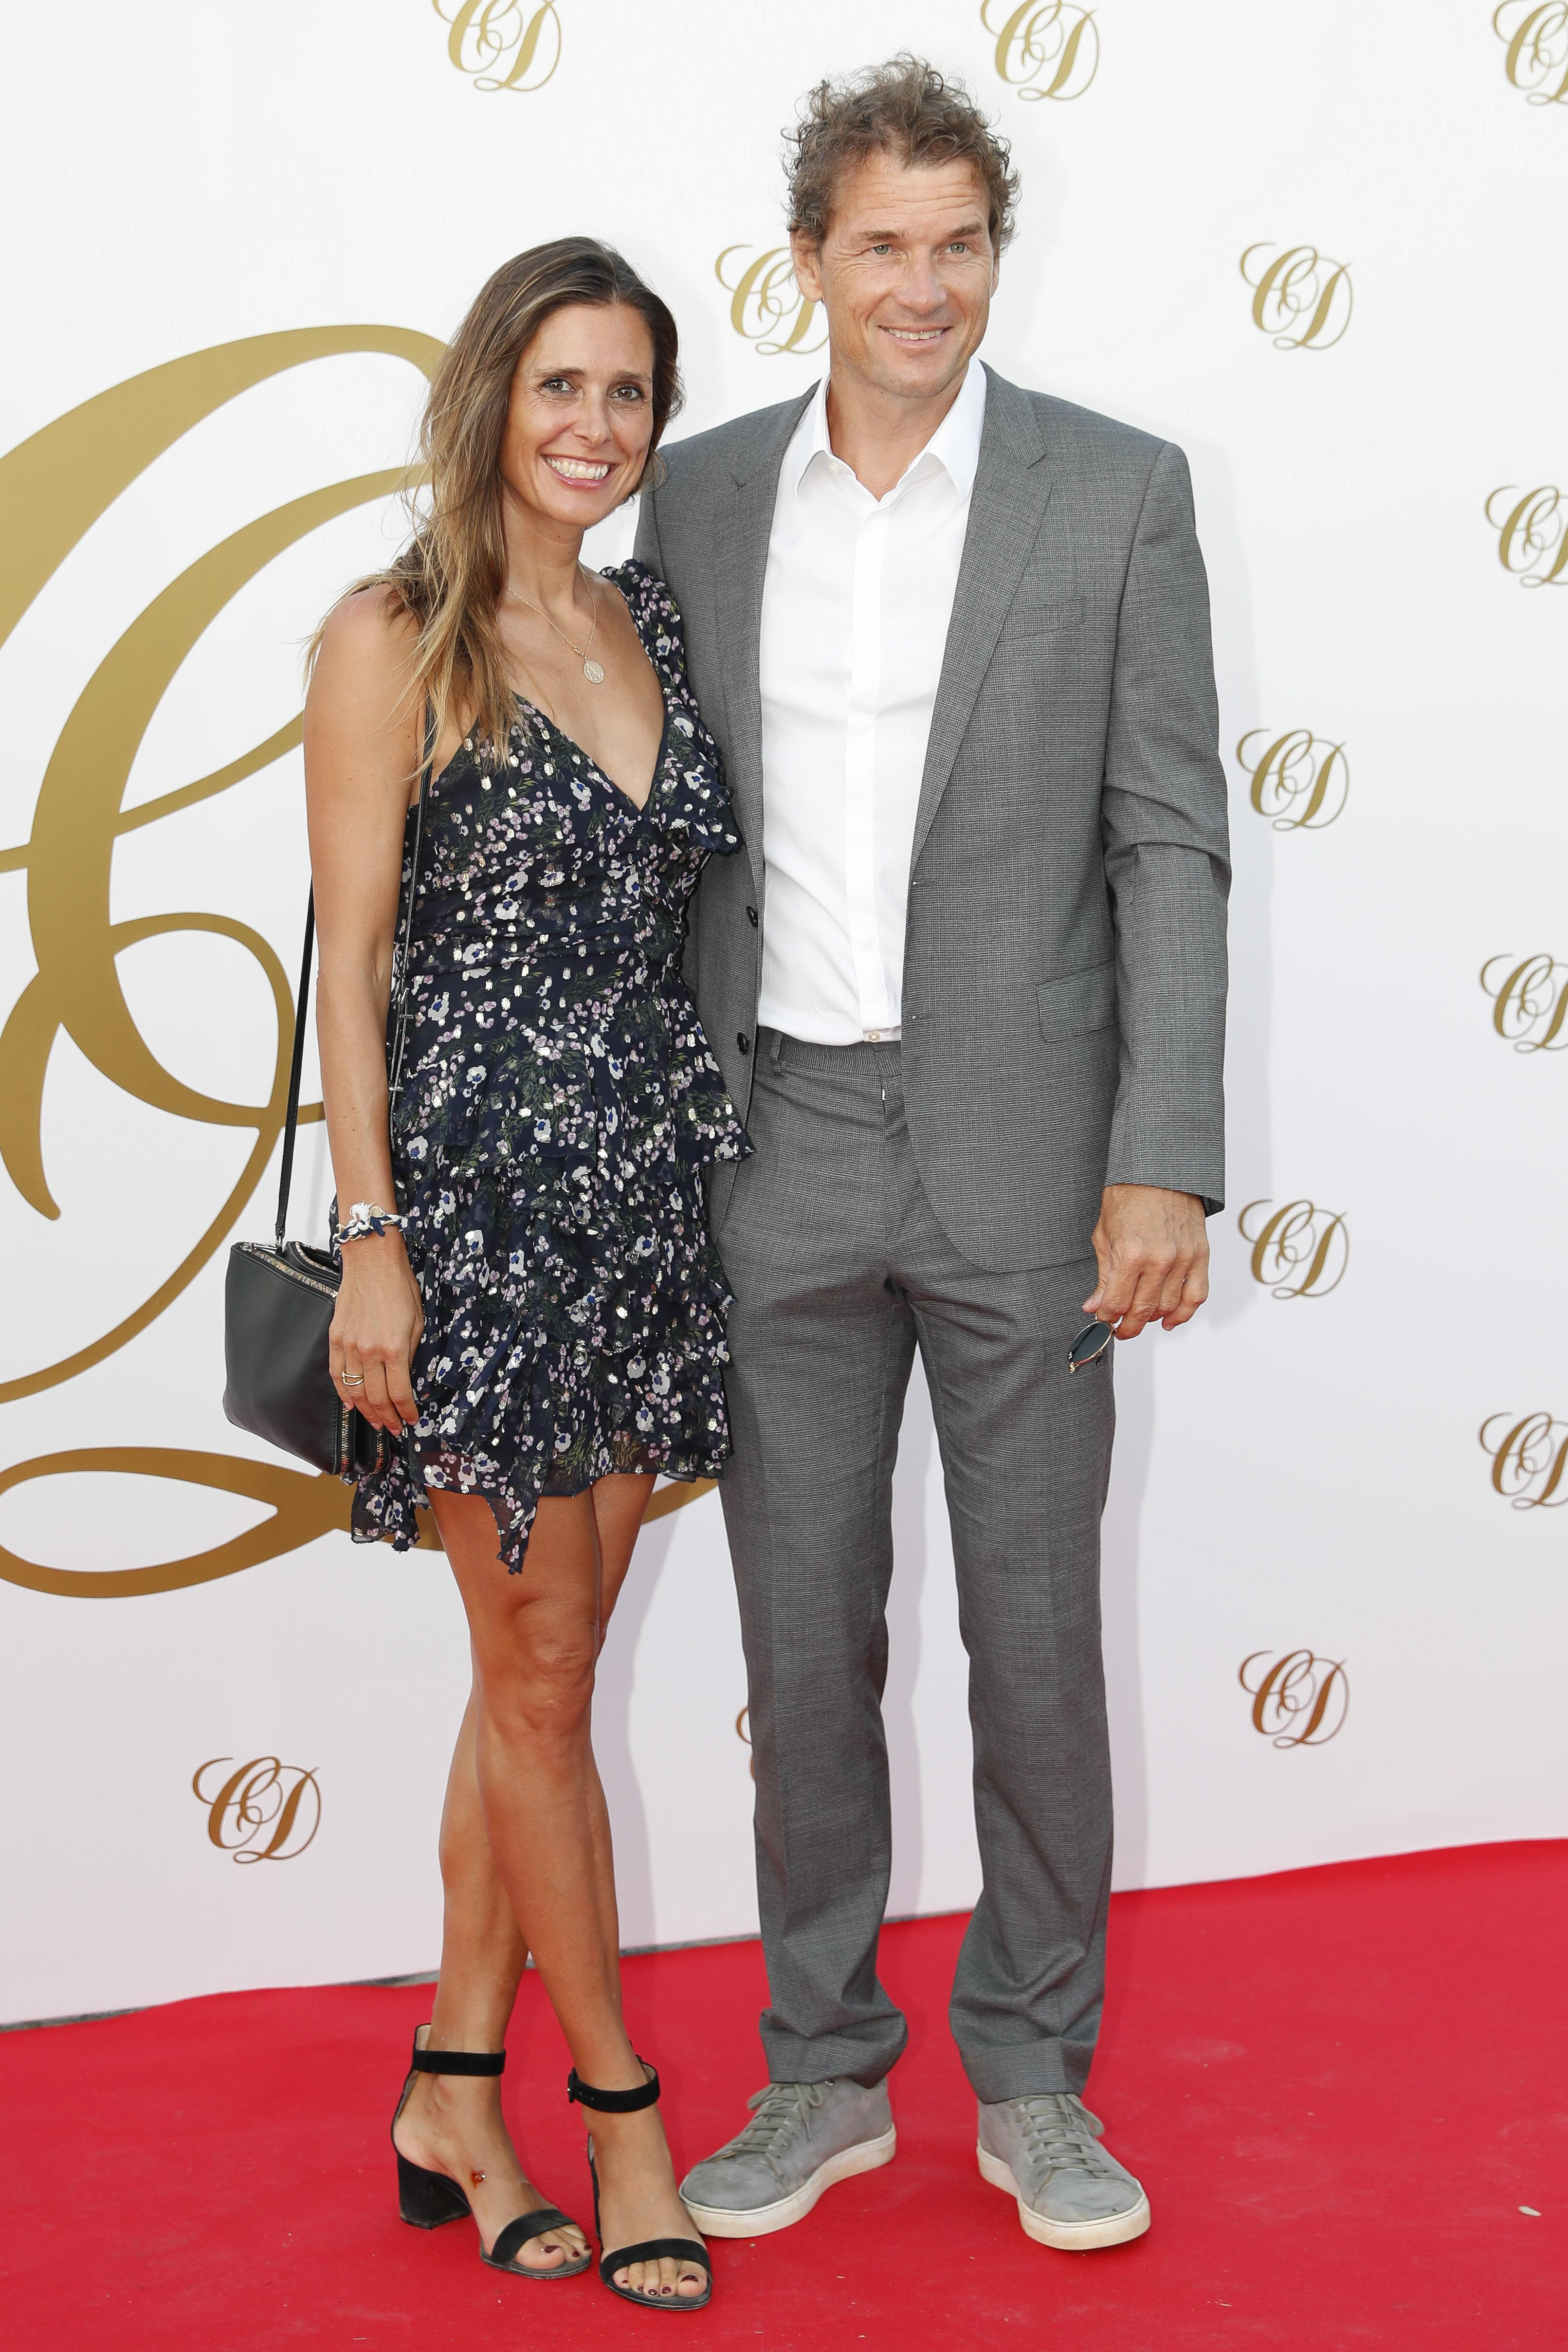 Former Arsenal keeper Jens Lehmann and wife Andrea turn out for Cesc Fabregas' wedding party